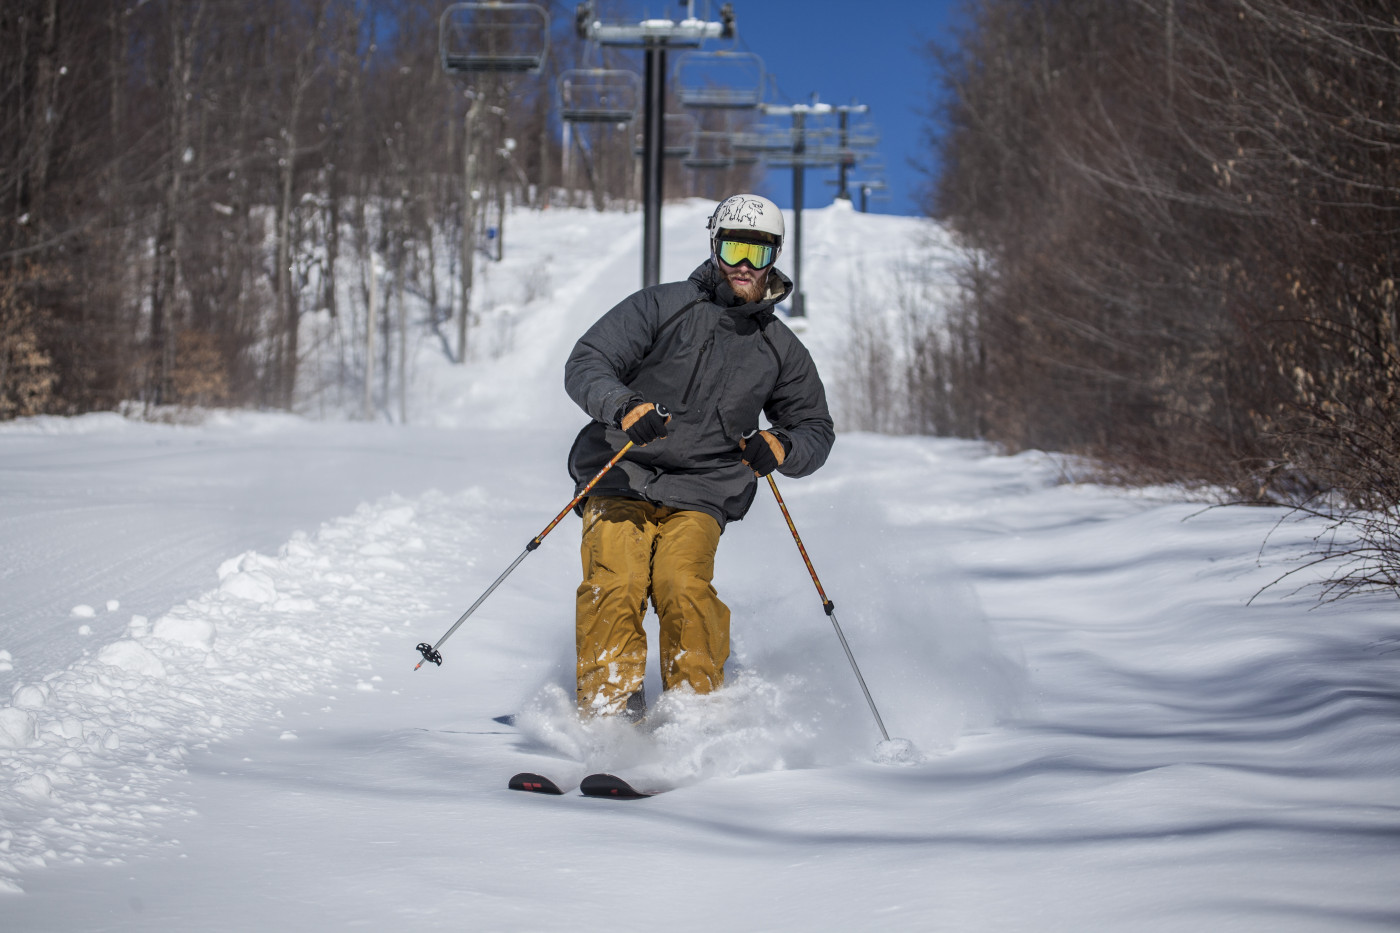 Skier at Oak Mountain